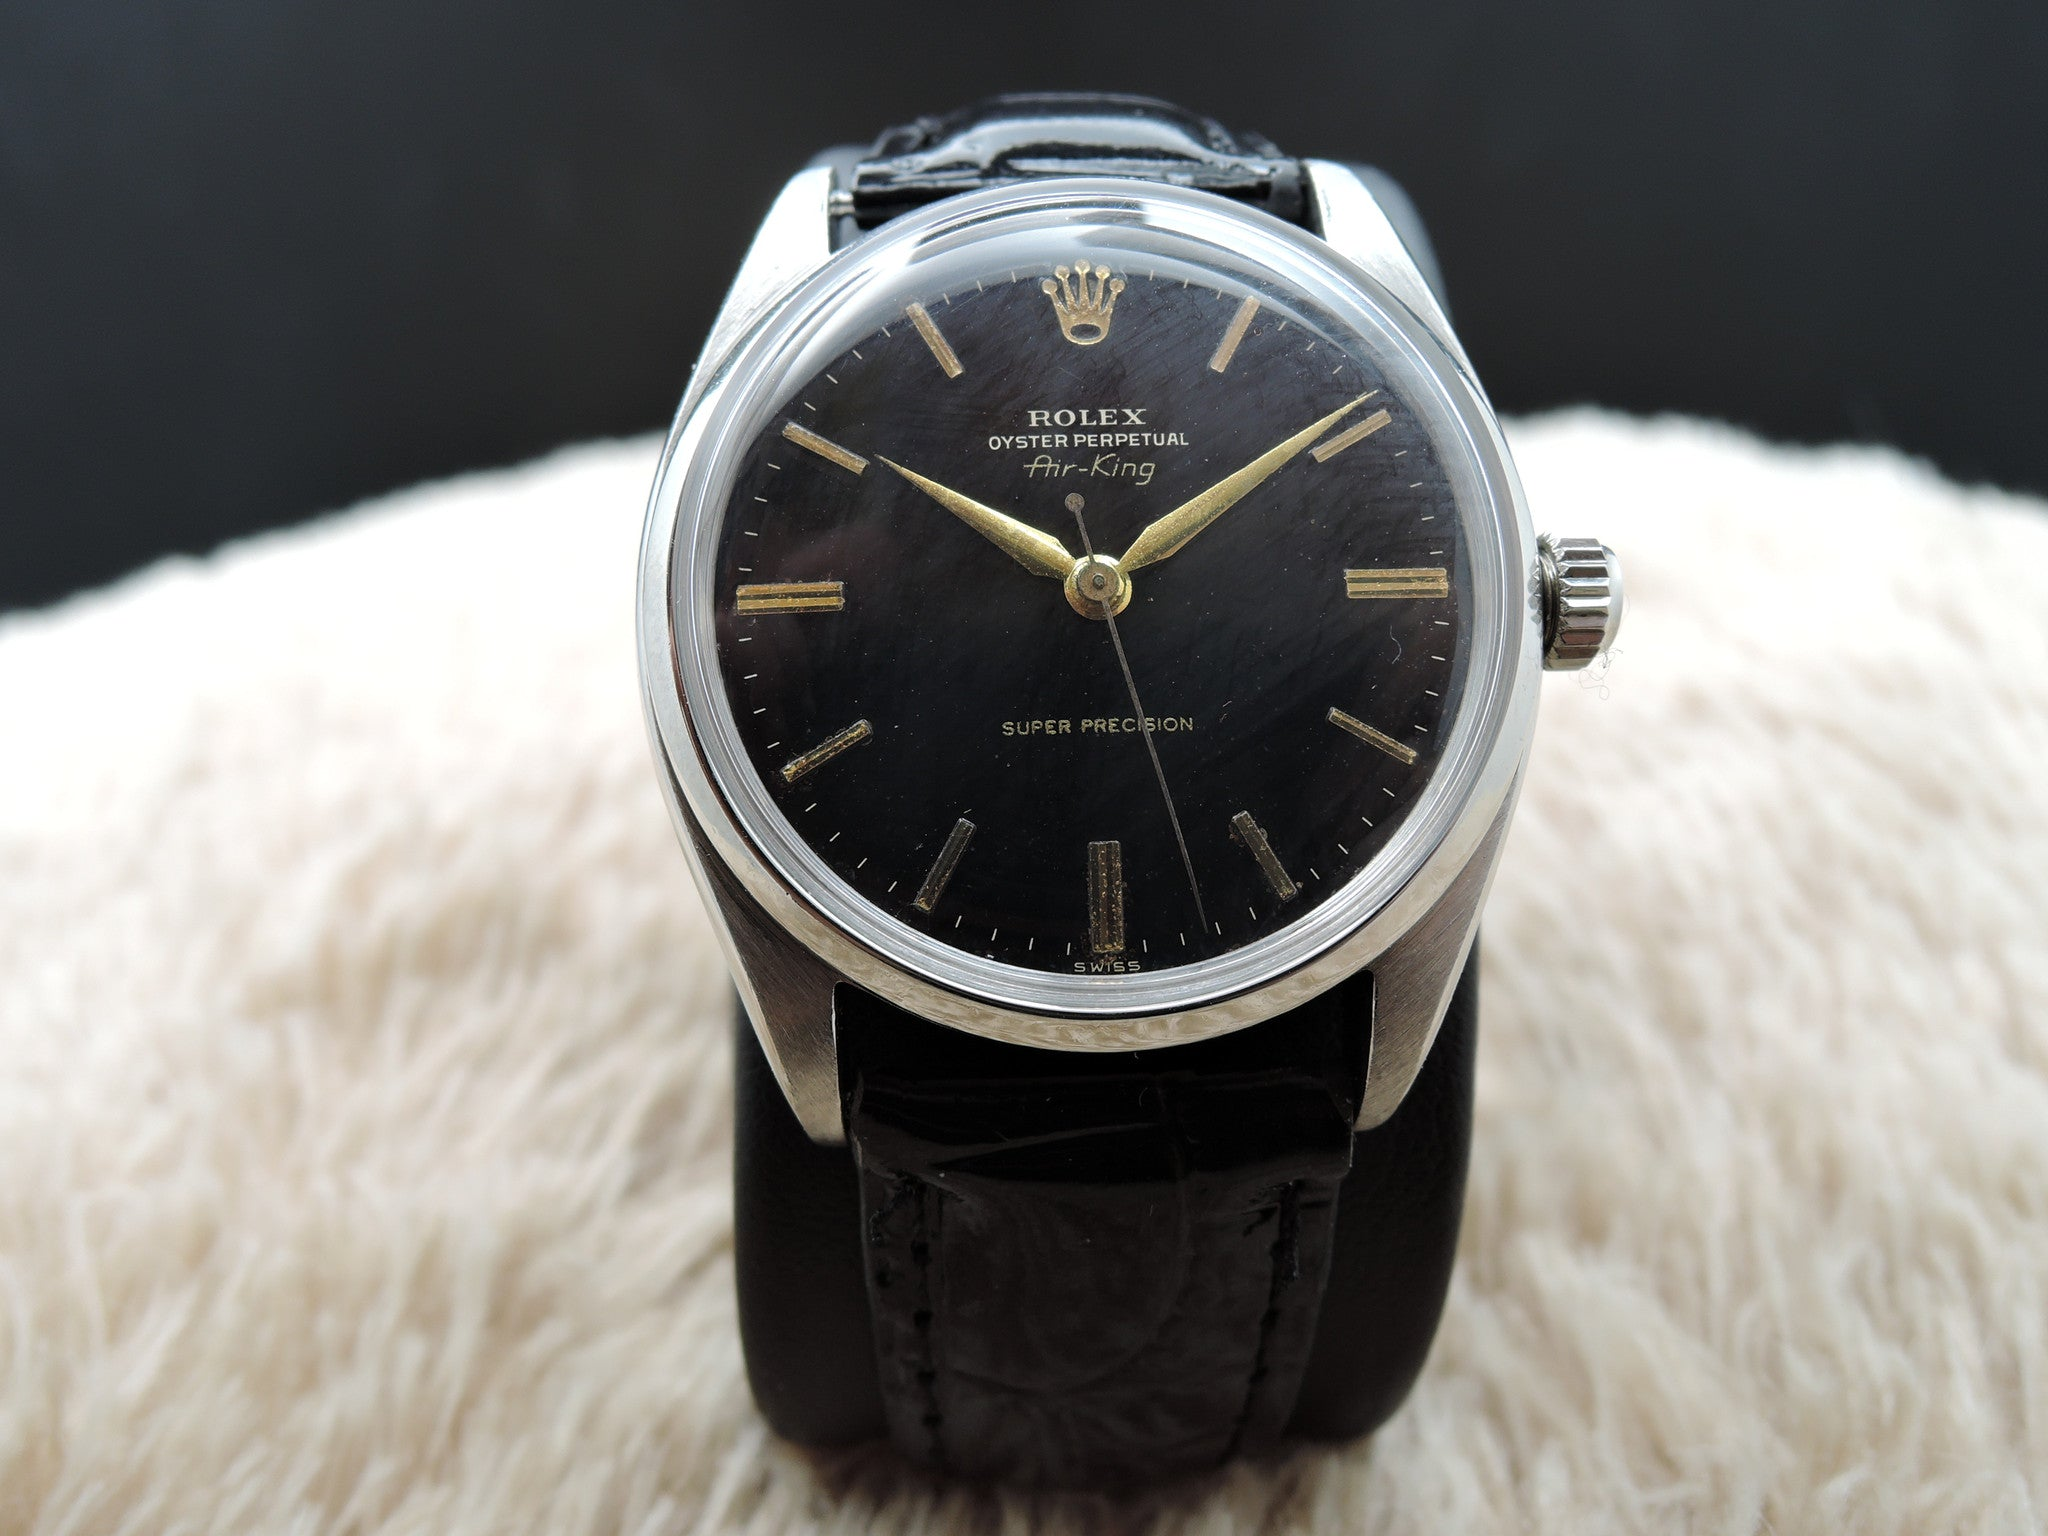 1959 Rolex Air King 5500 Quot Super Precision Quot With Original